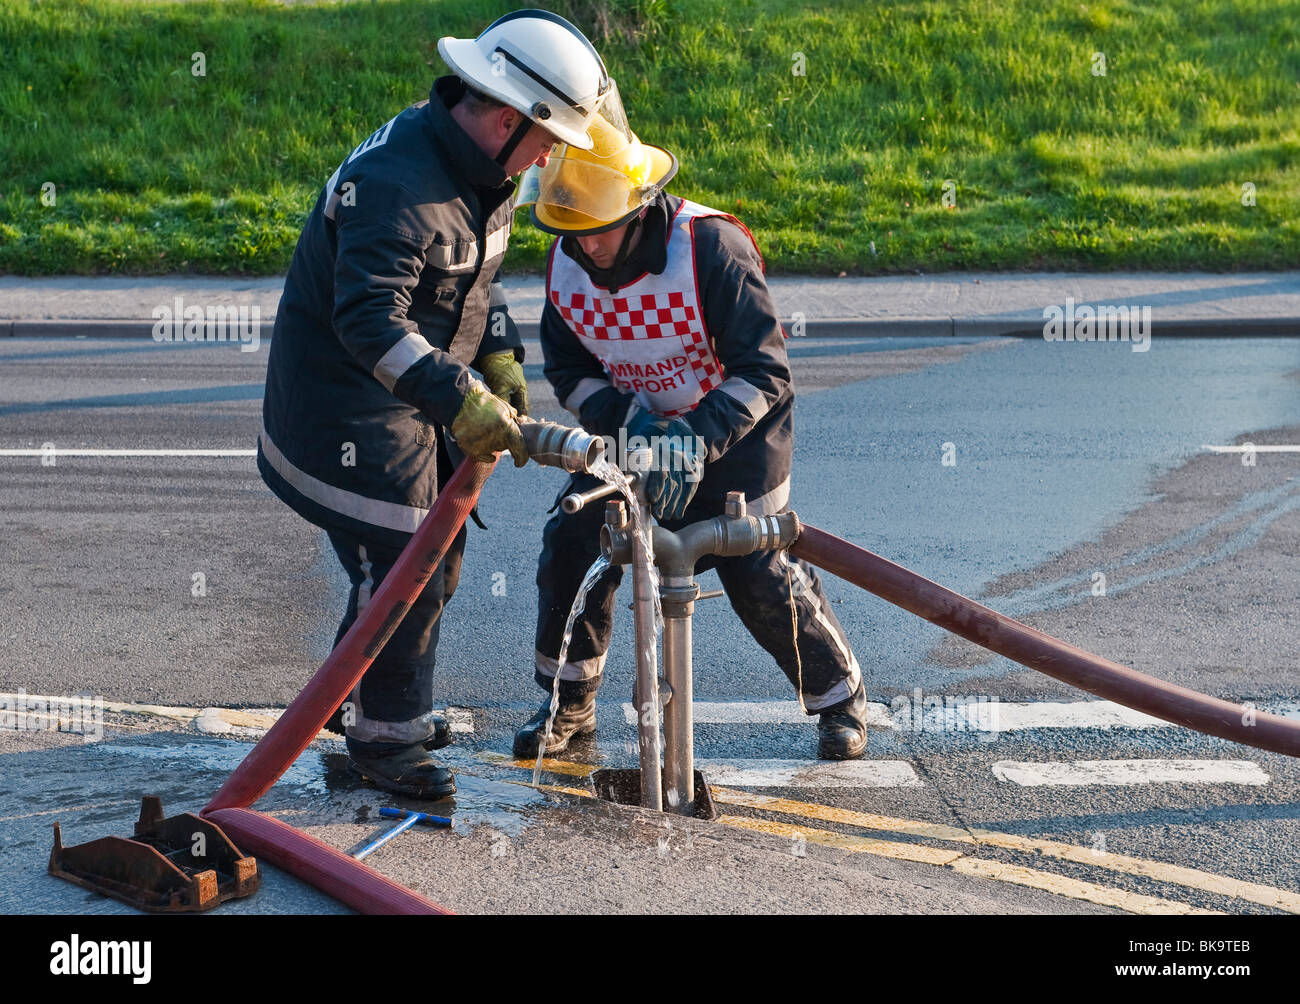 Two firemen from the Mid-Wales Fire and Rescue Service connect hoses to a street hydrant - Stock Image